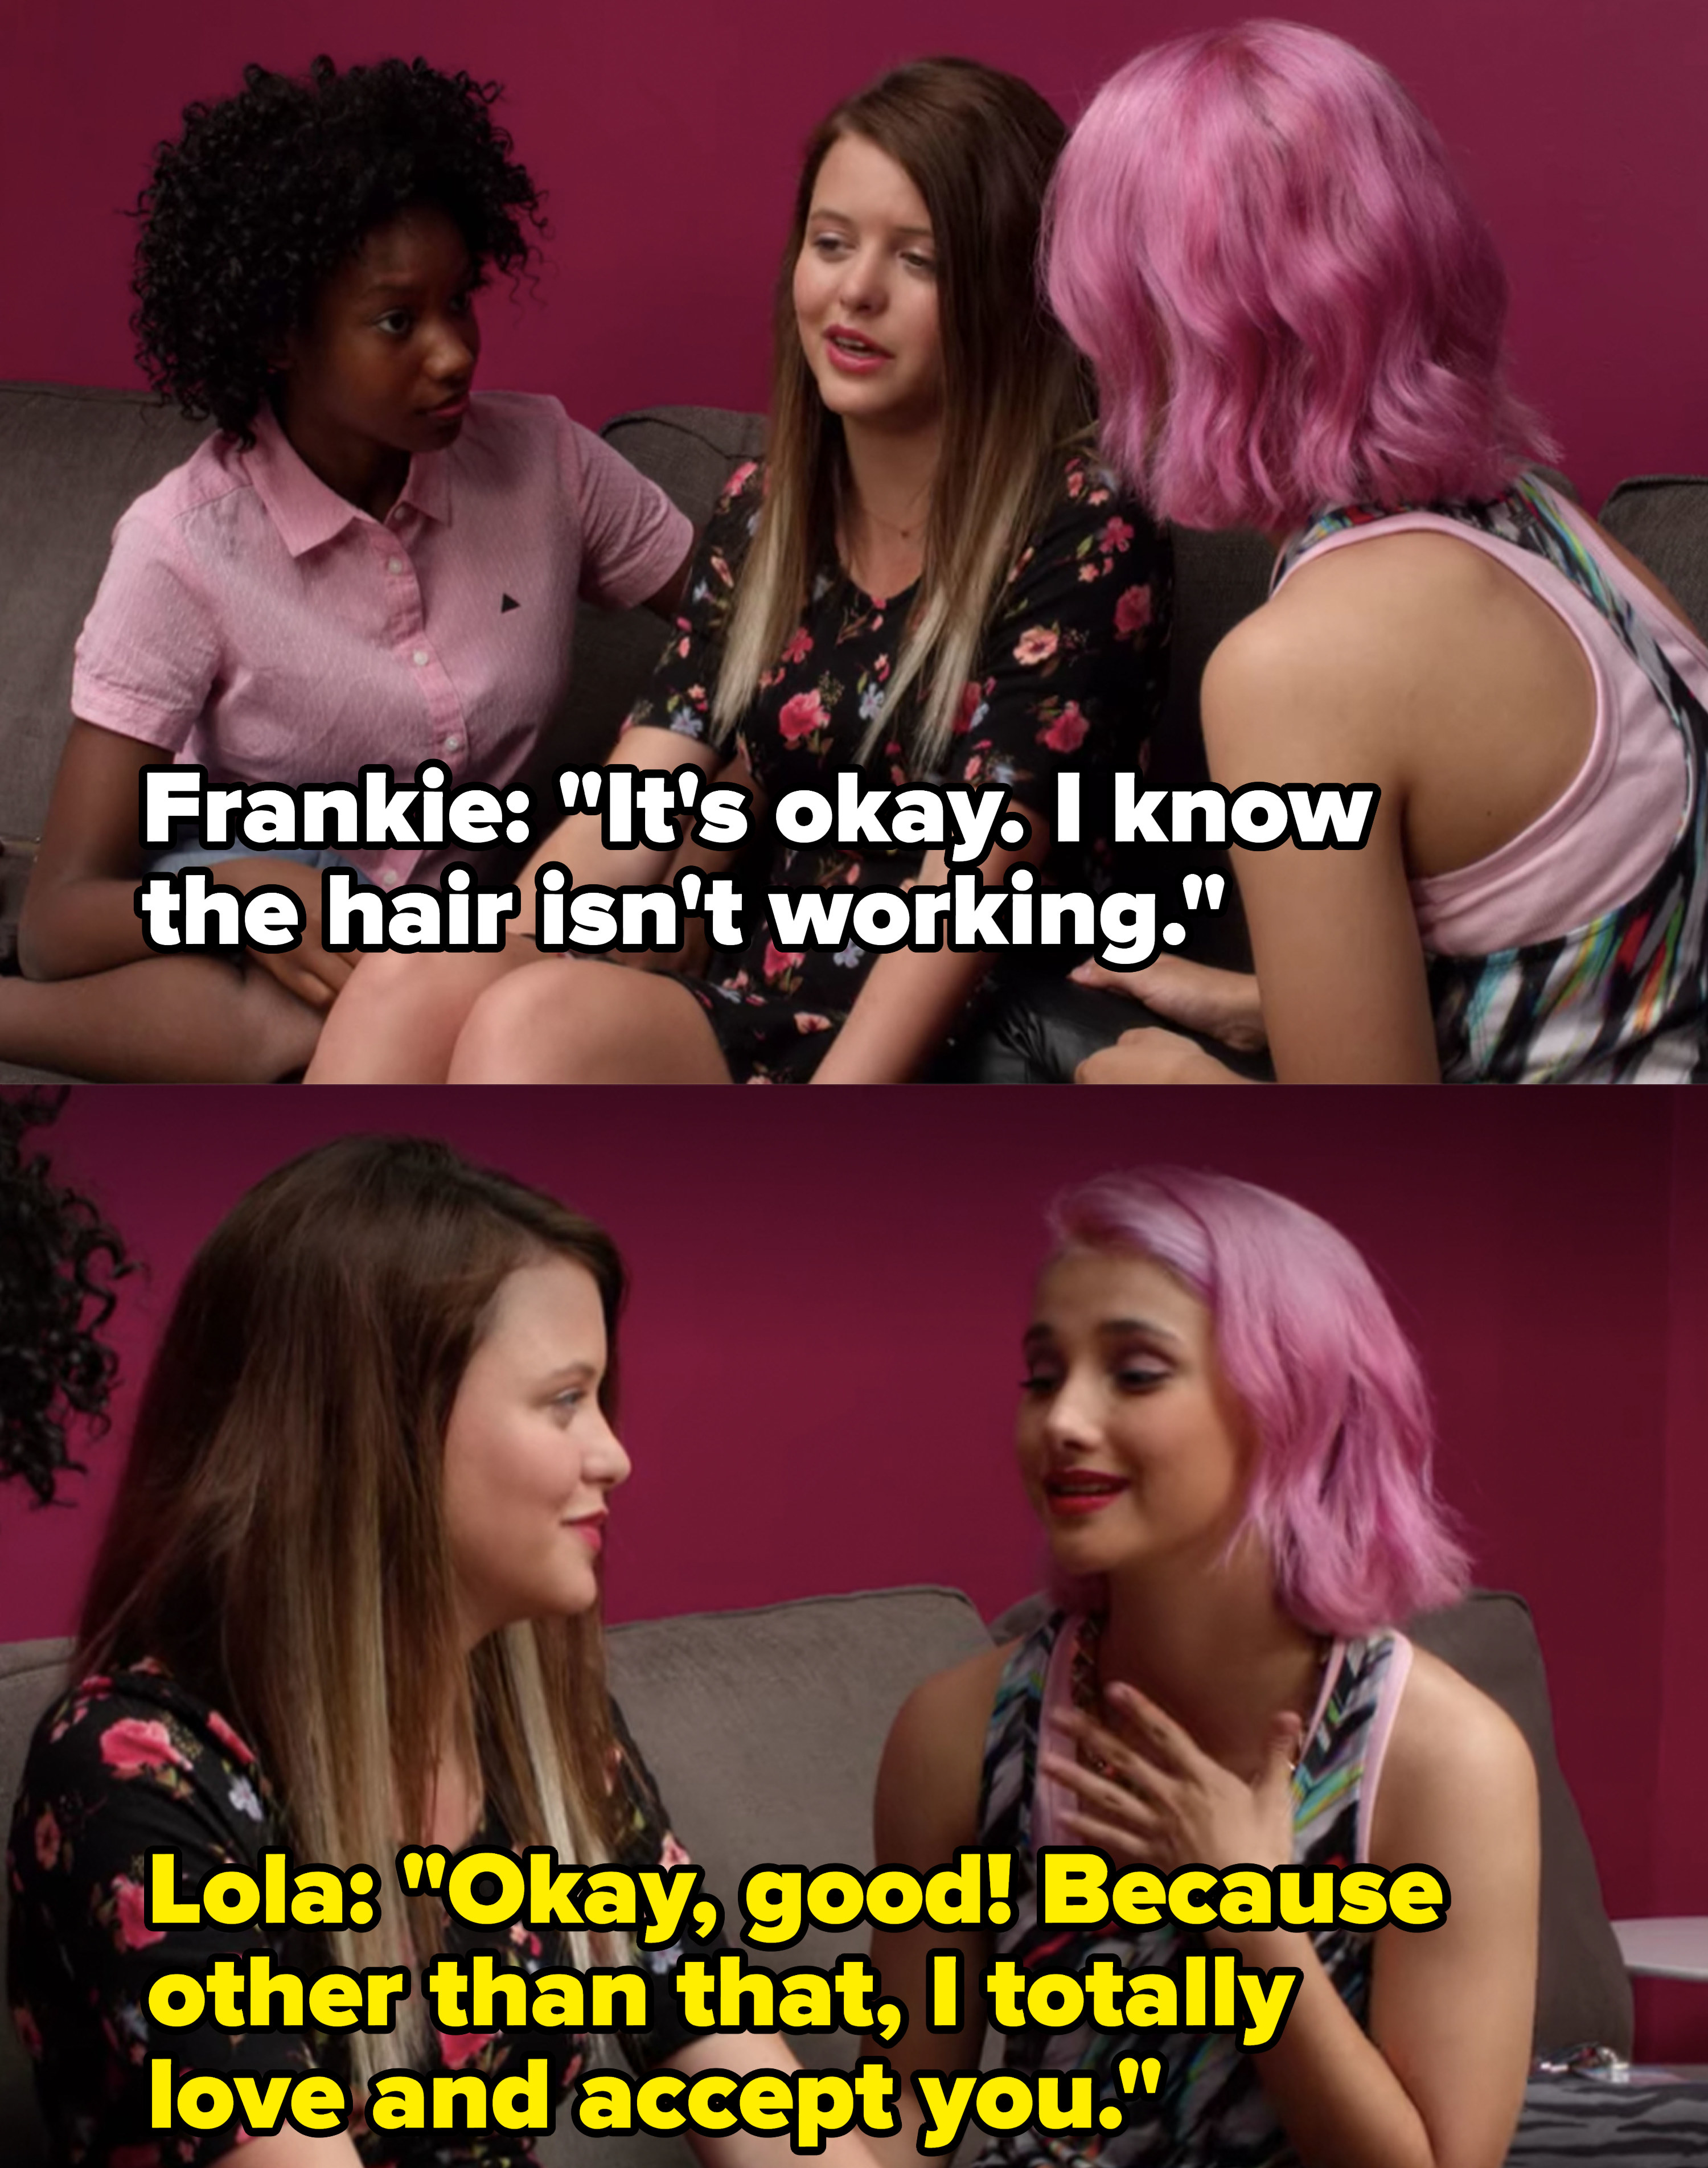 Lola tells Frankie she totally loves and accepts her other than her bad haircut